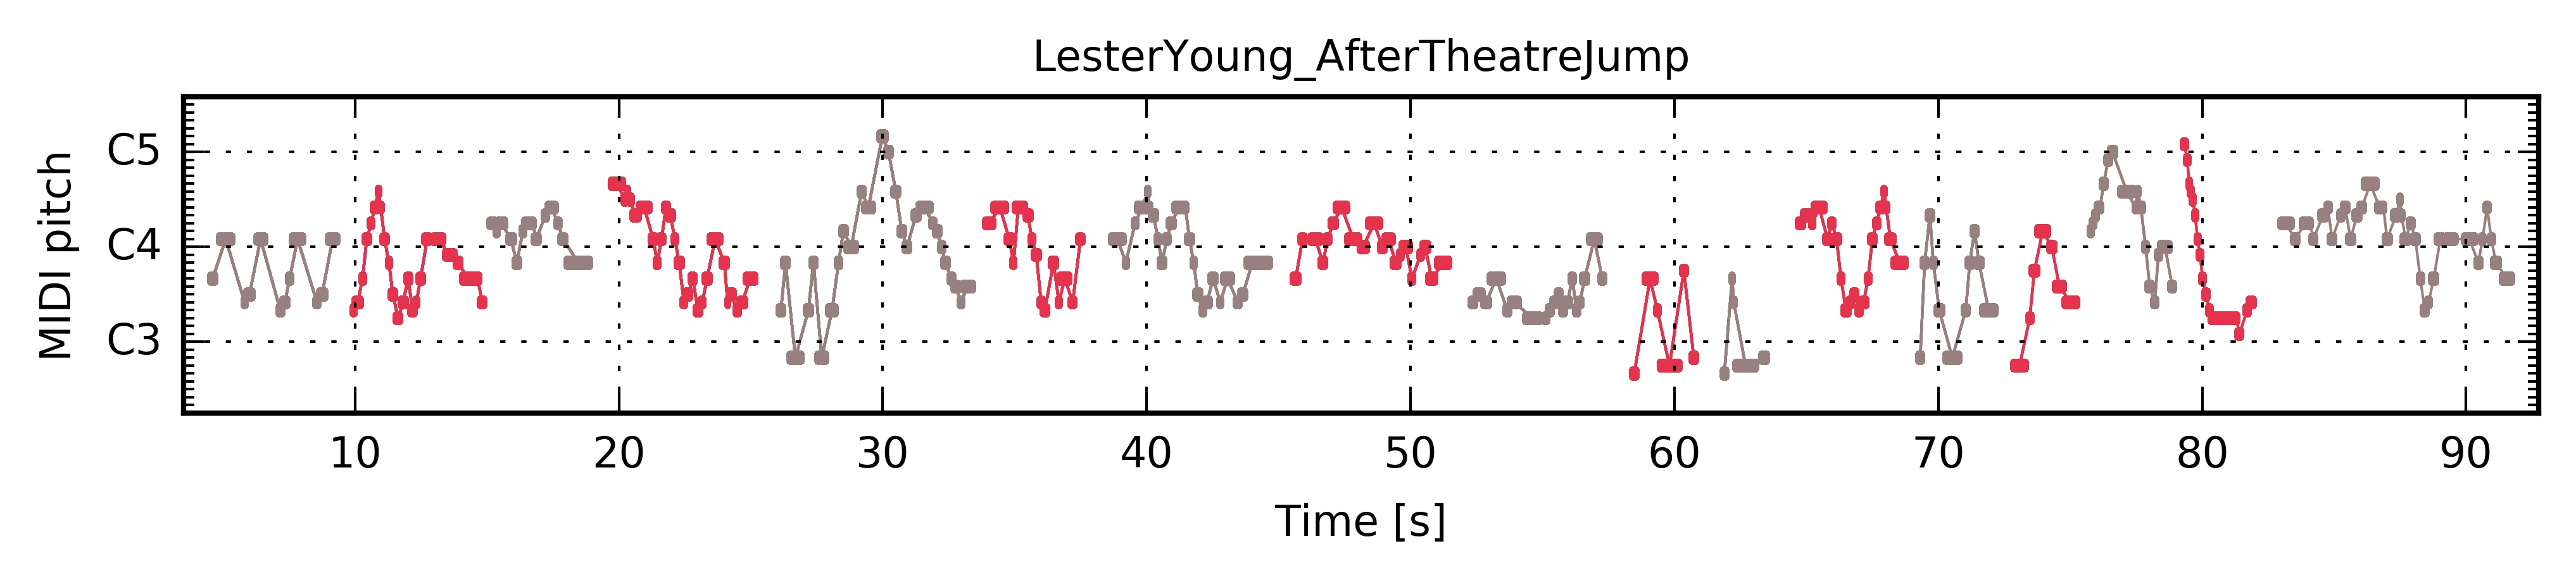 ../../_images/PianoRoll_LesterYoung_AfterTheatreJump.jpg